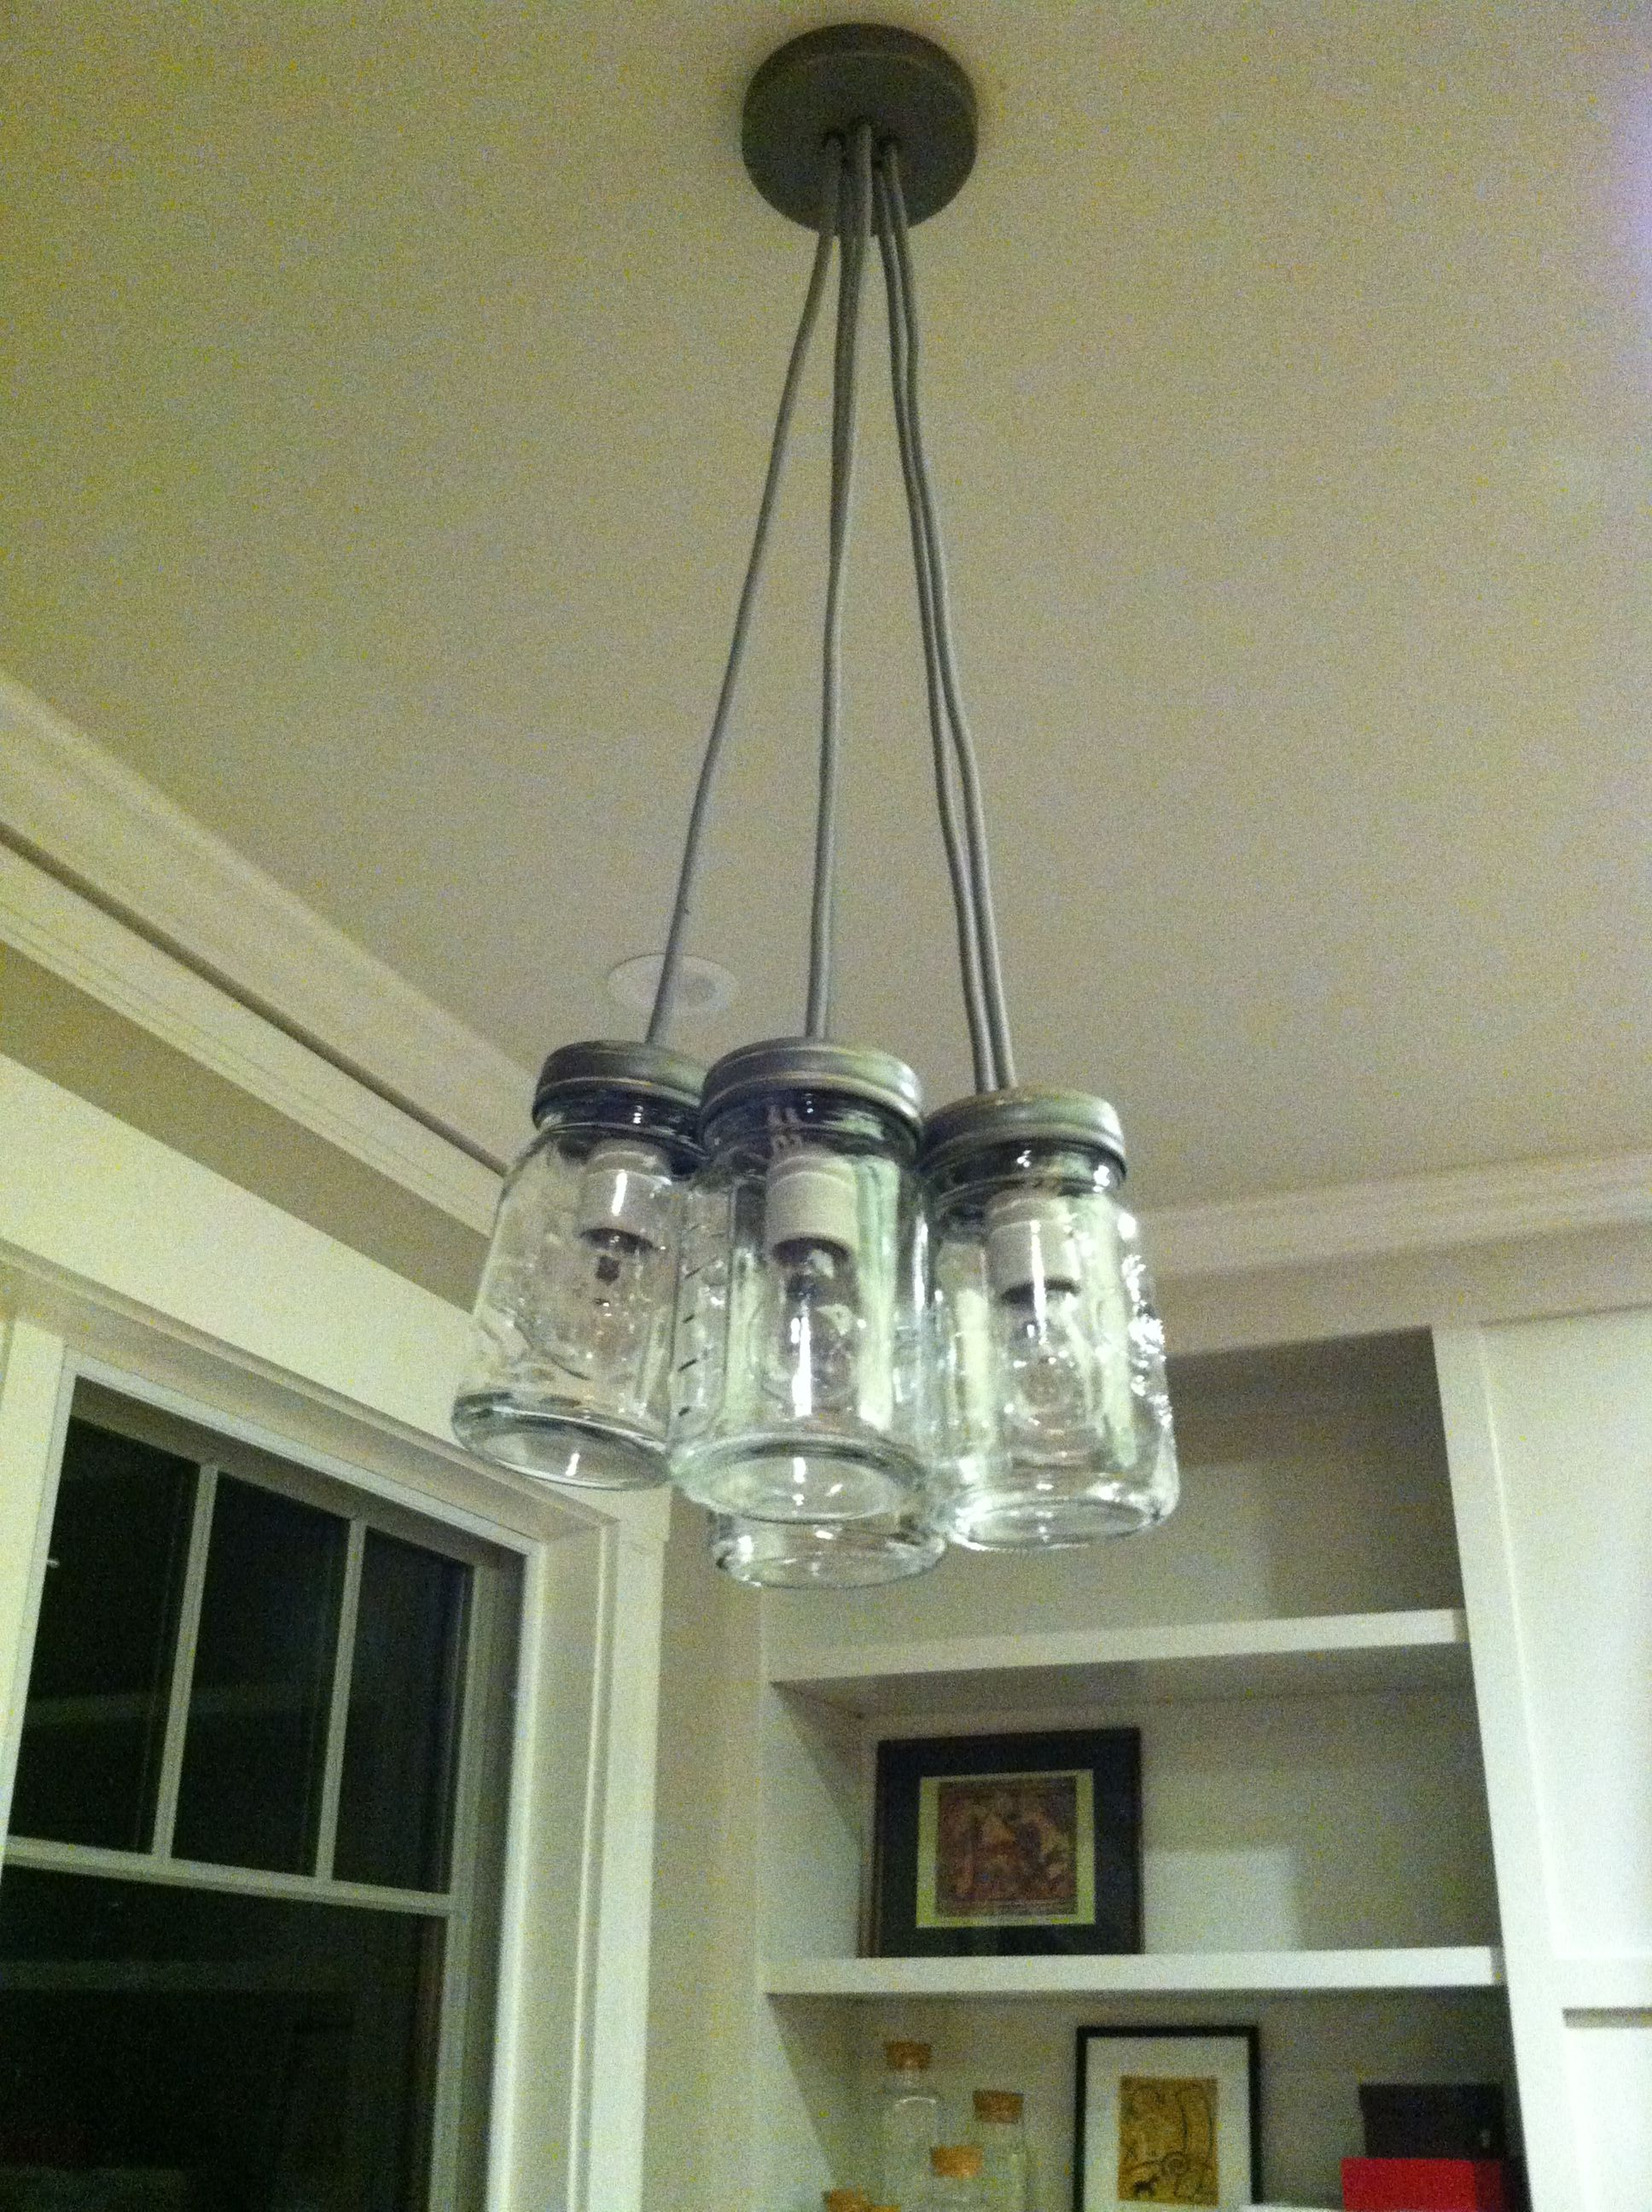 Mason Jar Light Fixture From Pottery Barn But Could Diy